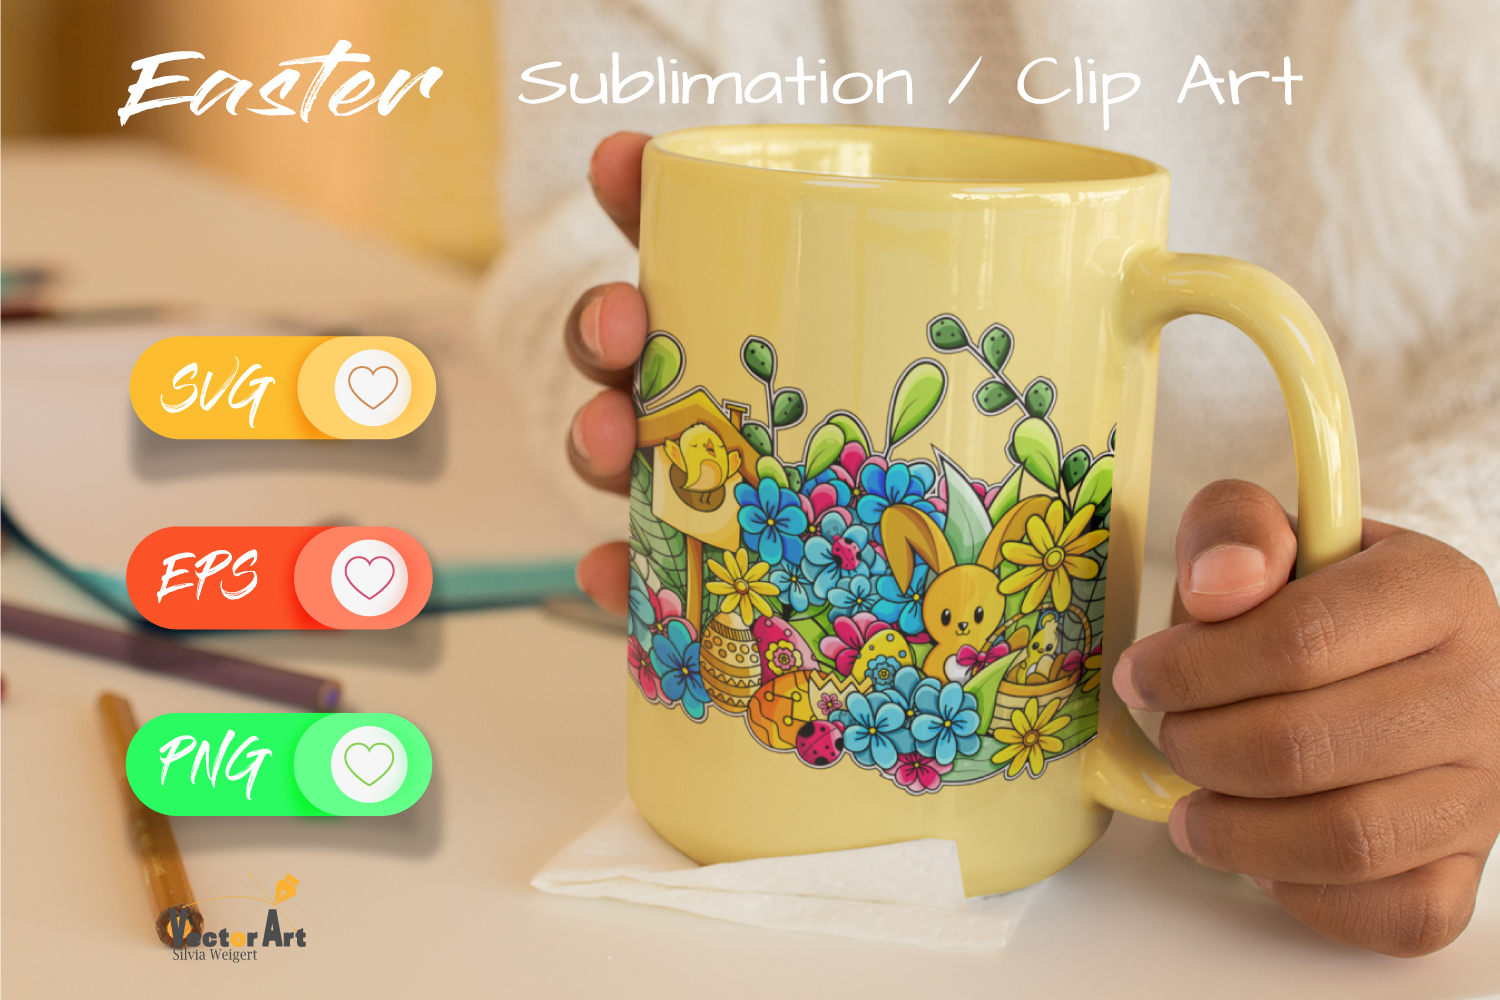 Happy Easter Illustration - Sublimation / Clip Art example image 3